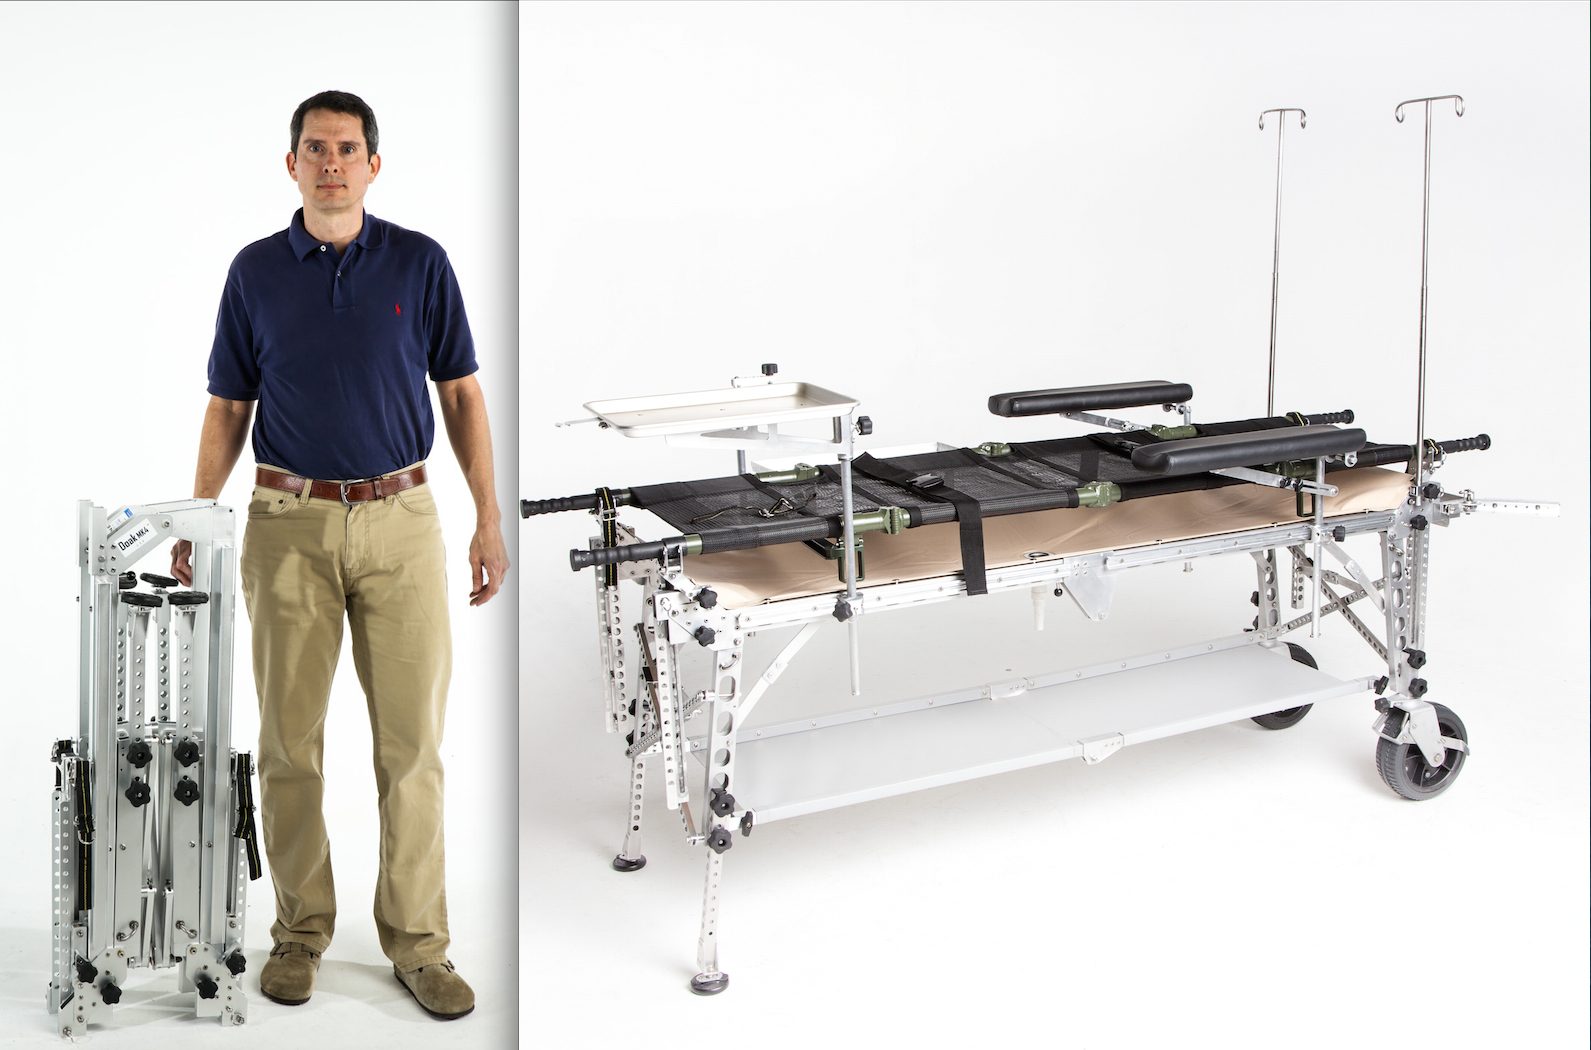 Mark W. Trimble, managing principal of Morzine Medical, stands next to the Doak Table folded. The tables are used in surgical procedures out on the battlefield by the U.S. Army and Navy, and can be put together in less than a minute.